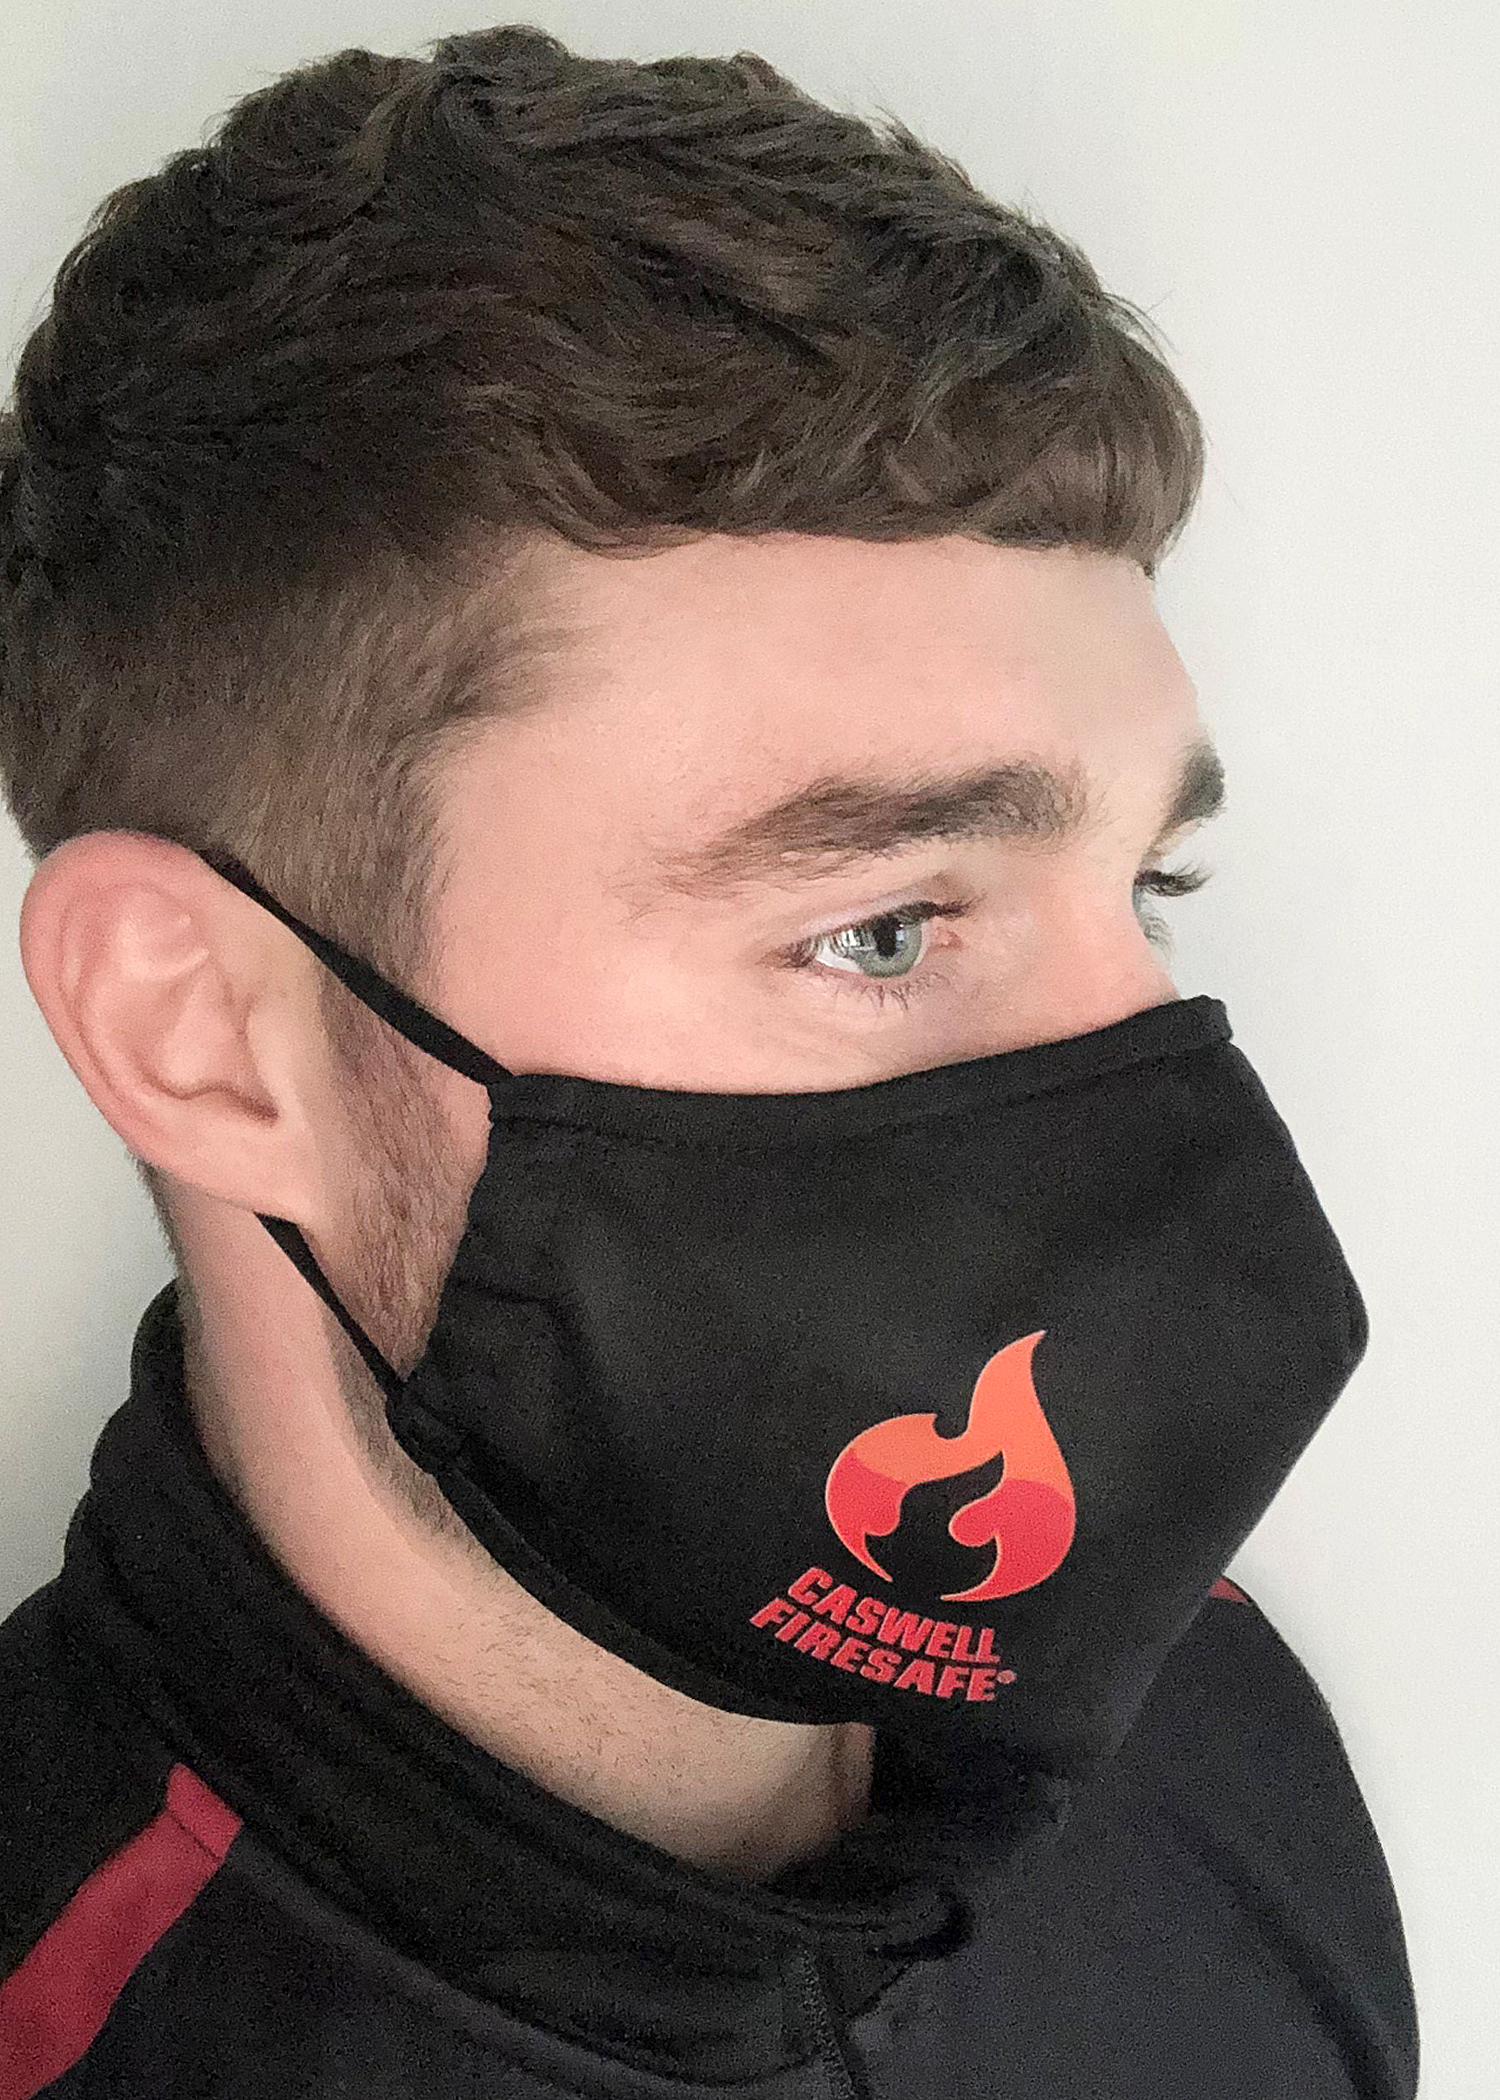 George Lowthion wearing Caswell Firesafe Mask